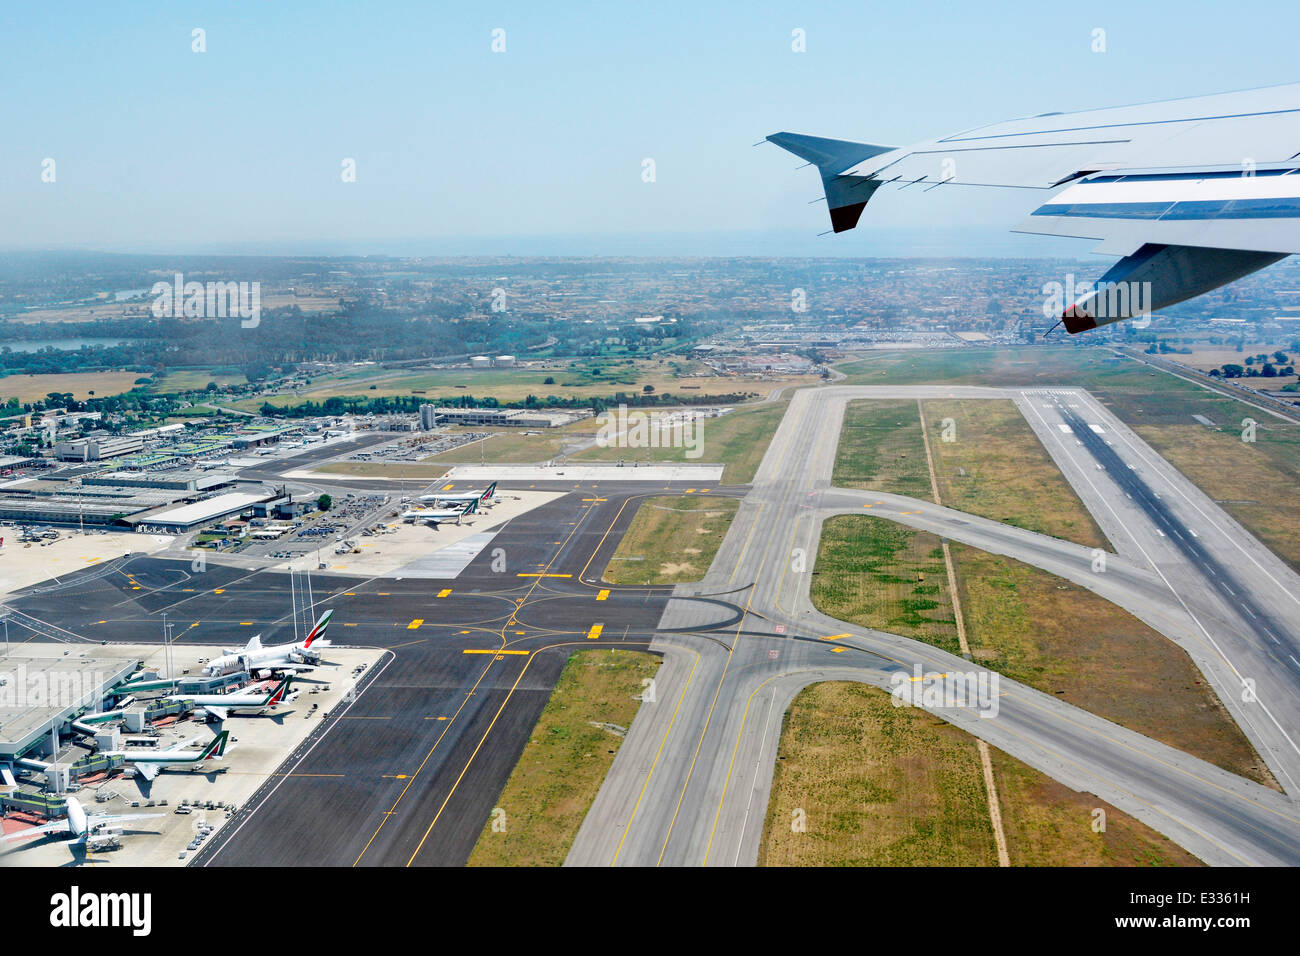 Runways and taxiing routes at Rome Fiumicino Airport - Stock Image